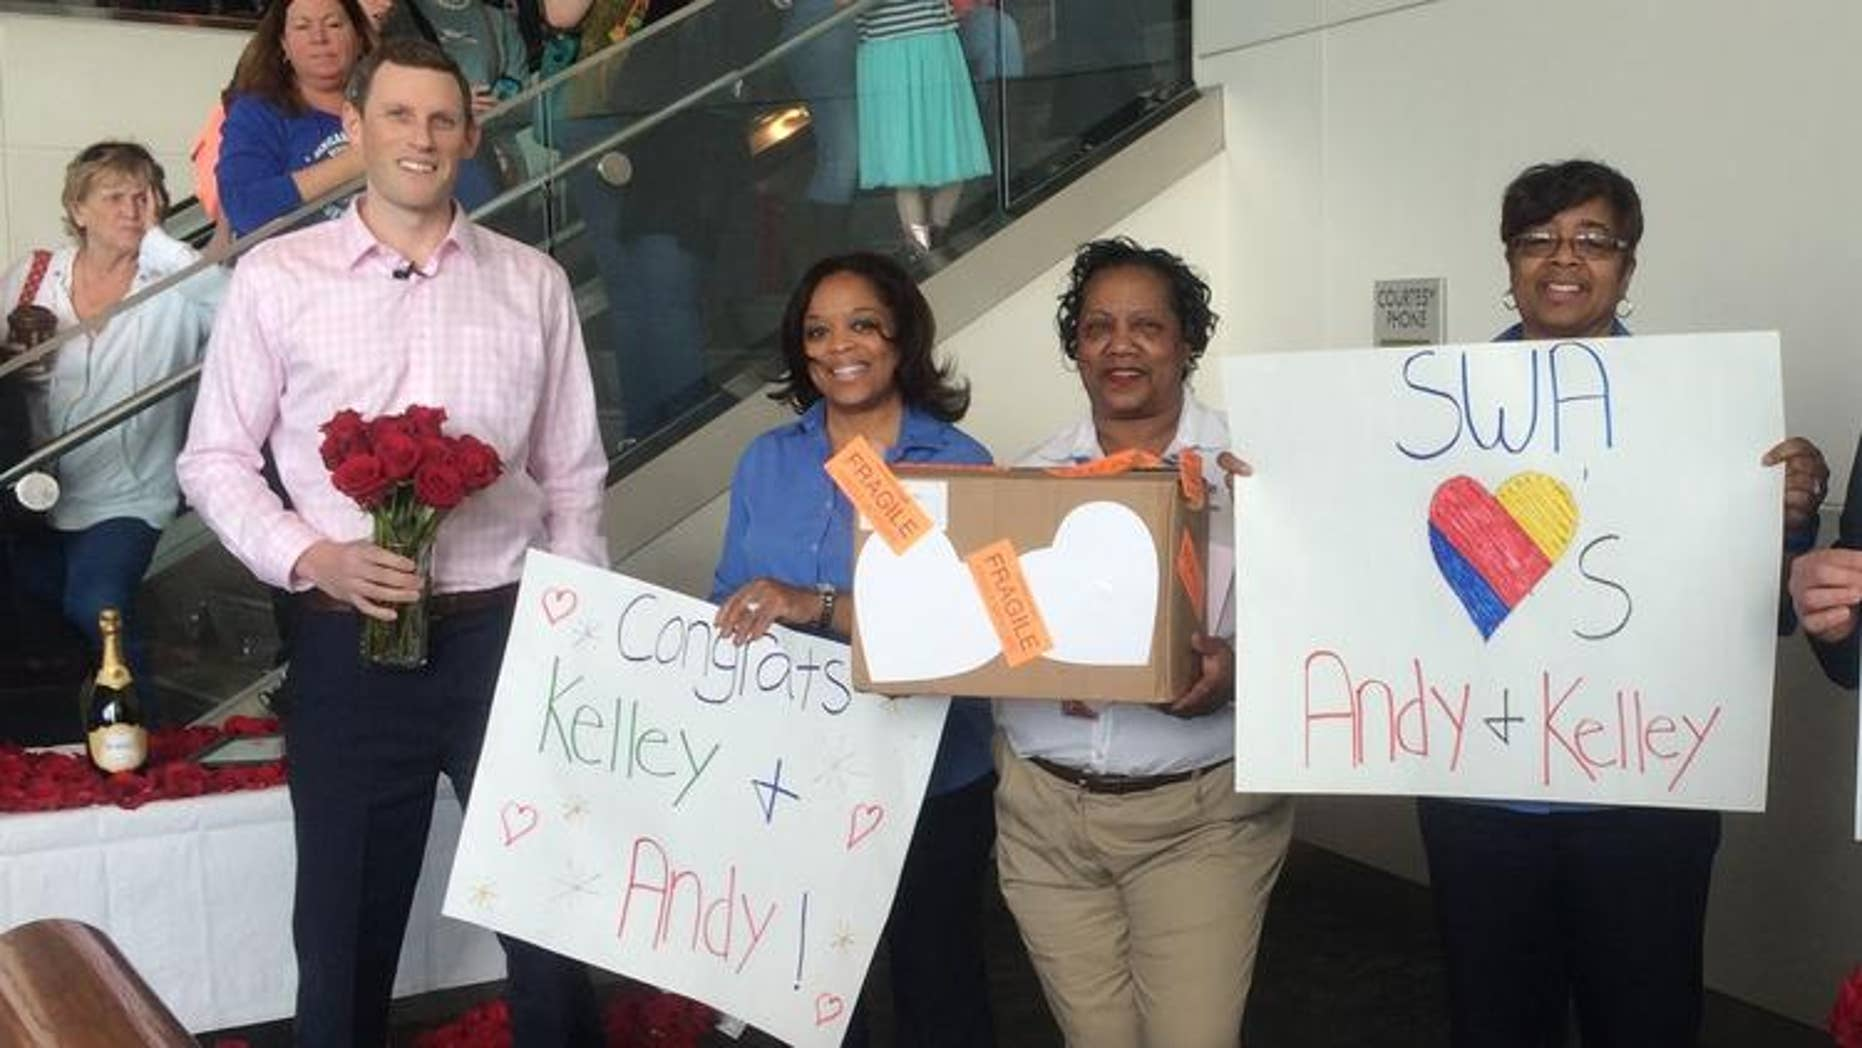 Andy McIlvaine, far left, waits with Southwest Airlines employees and passengers wait for his fiancee to arrive at BWI airport.